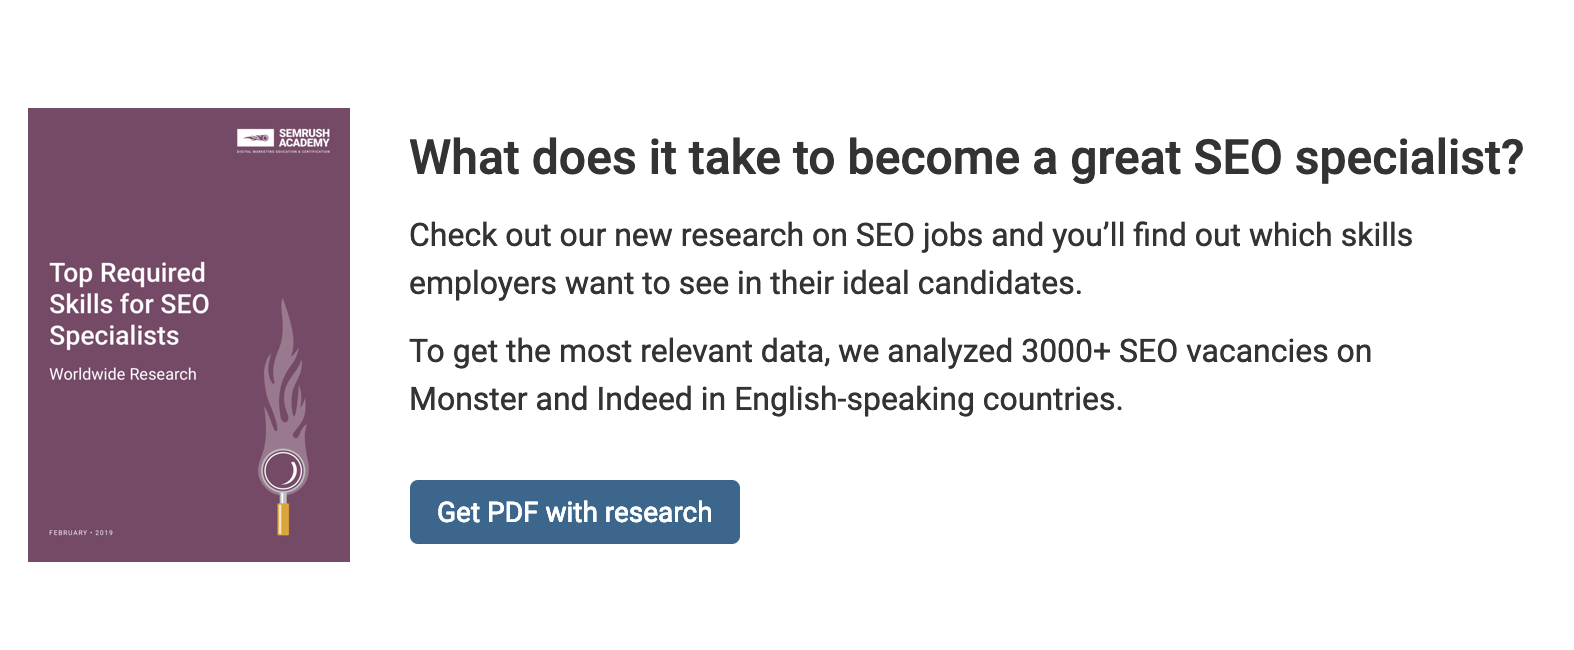 semrush research study pdf lead magnet.